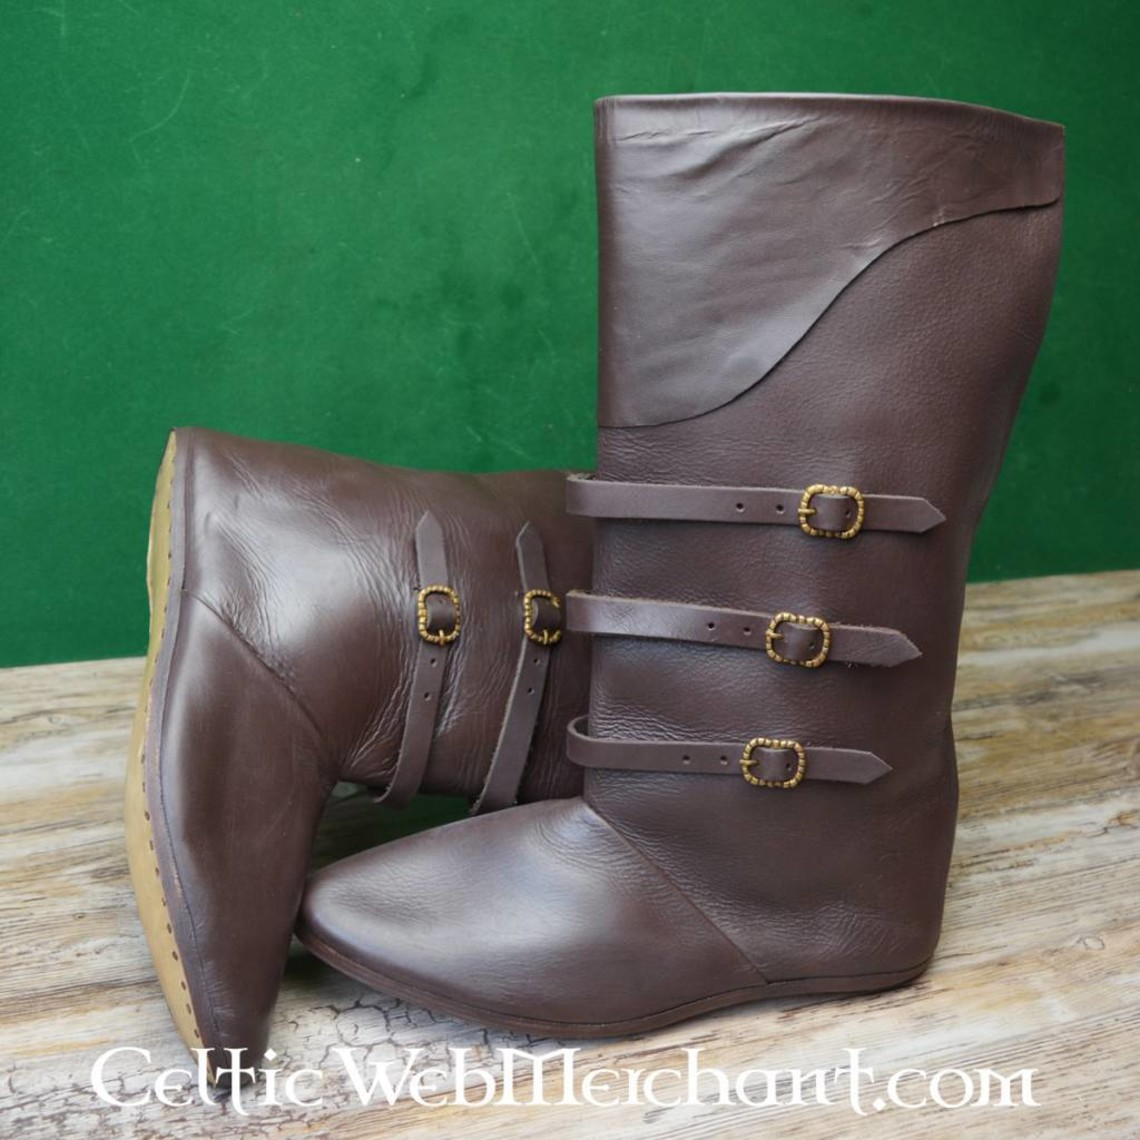 Ulfberth Botas con correas